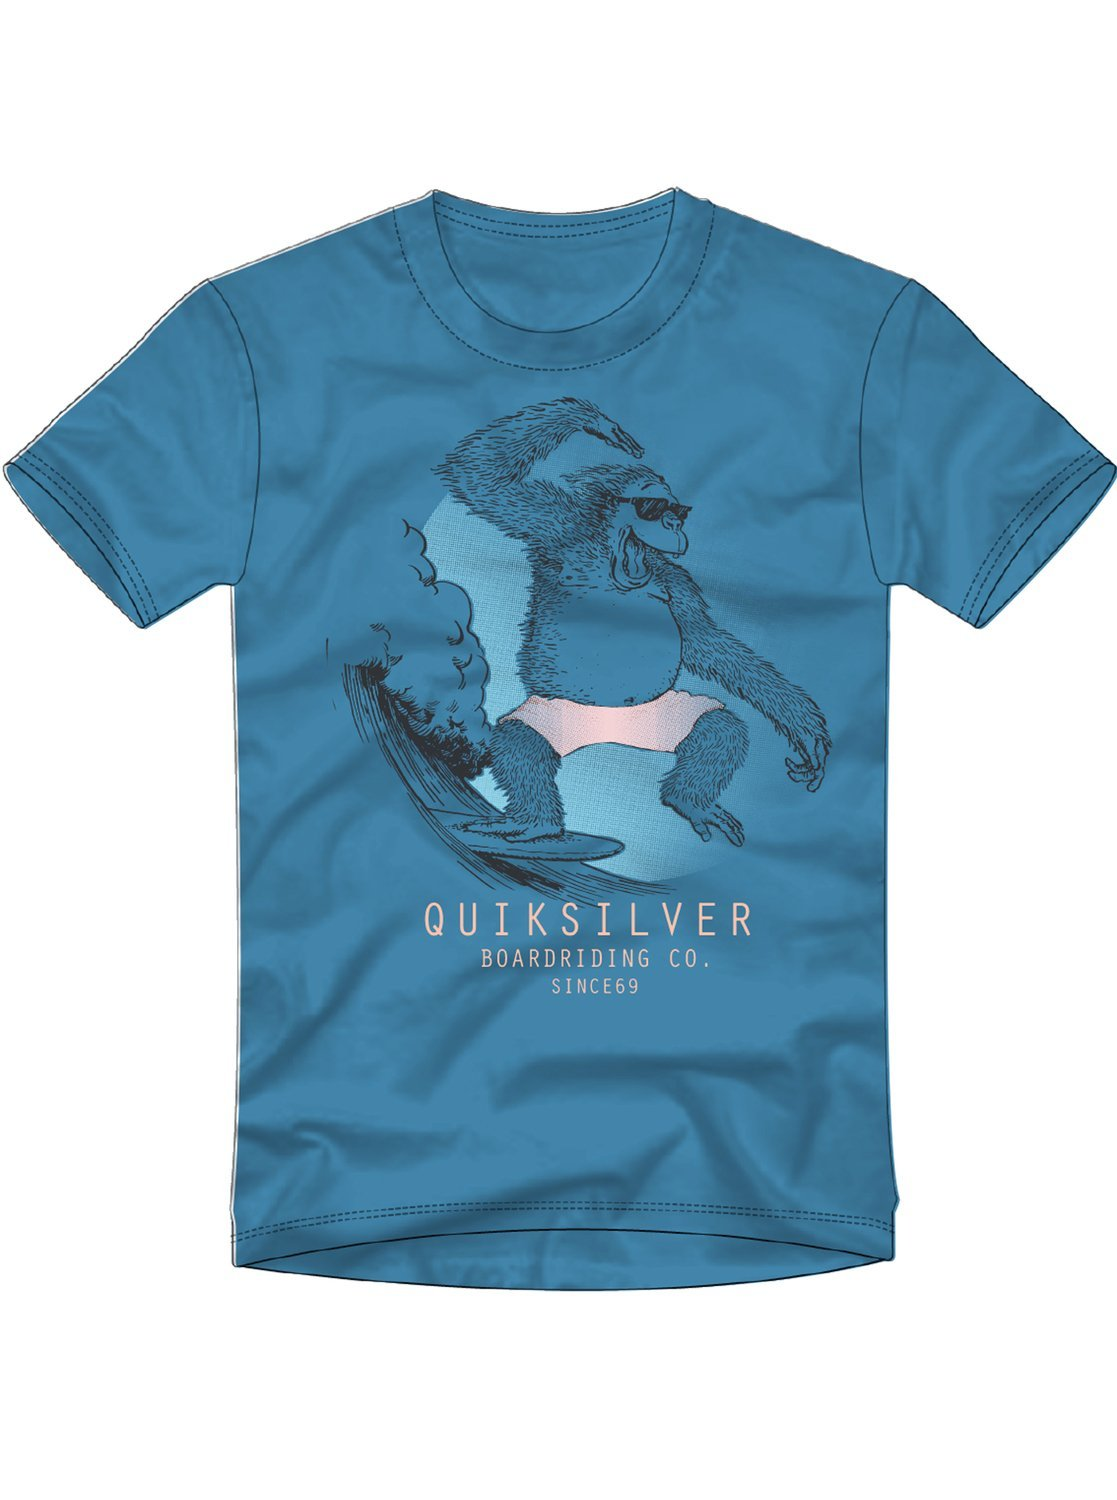 Quiksilver Little Boys' Freestyle Youth Tee Shirt, Cendre Blue, 5